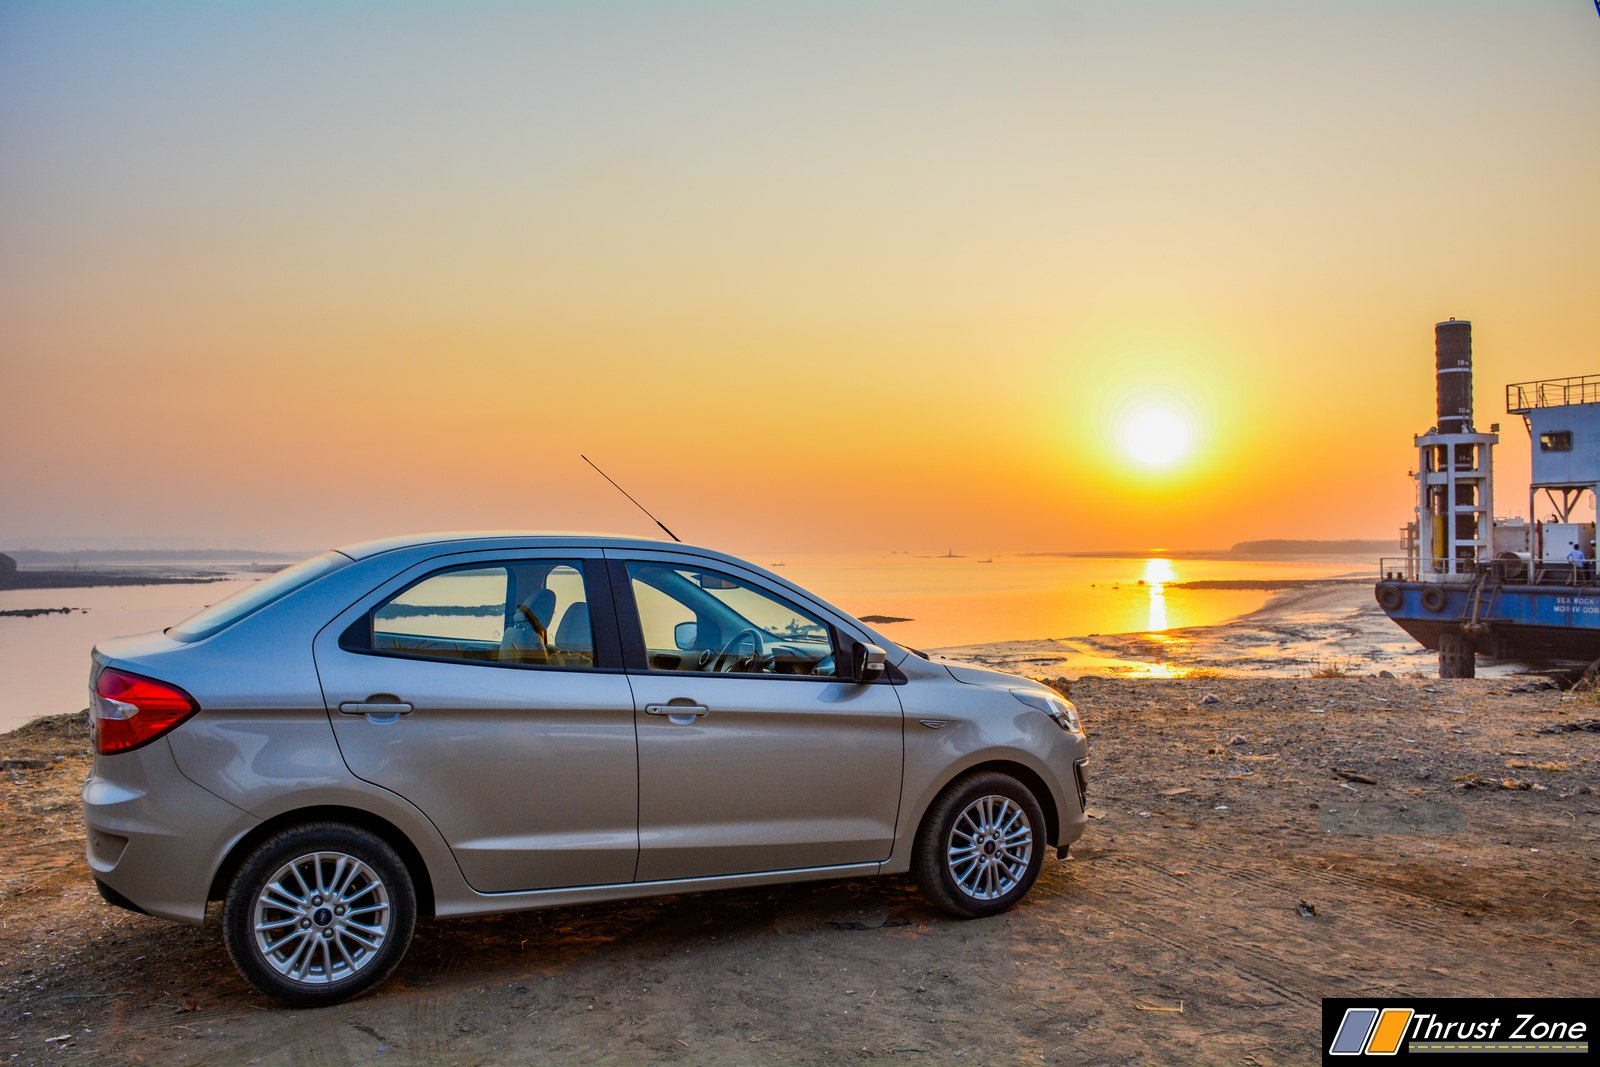 http://www.thrustzone.com/wp-content/uploads/2019/01/2018-Ford-Aspire-Diesel-Review-Road-Test-3-3.jpg